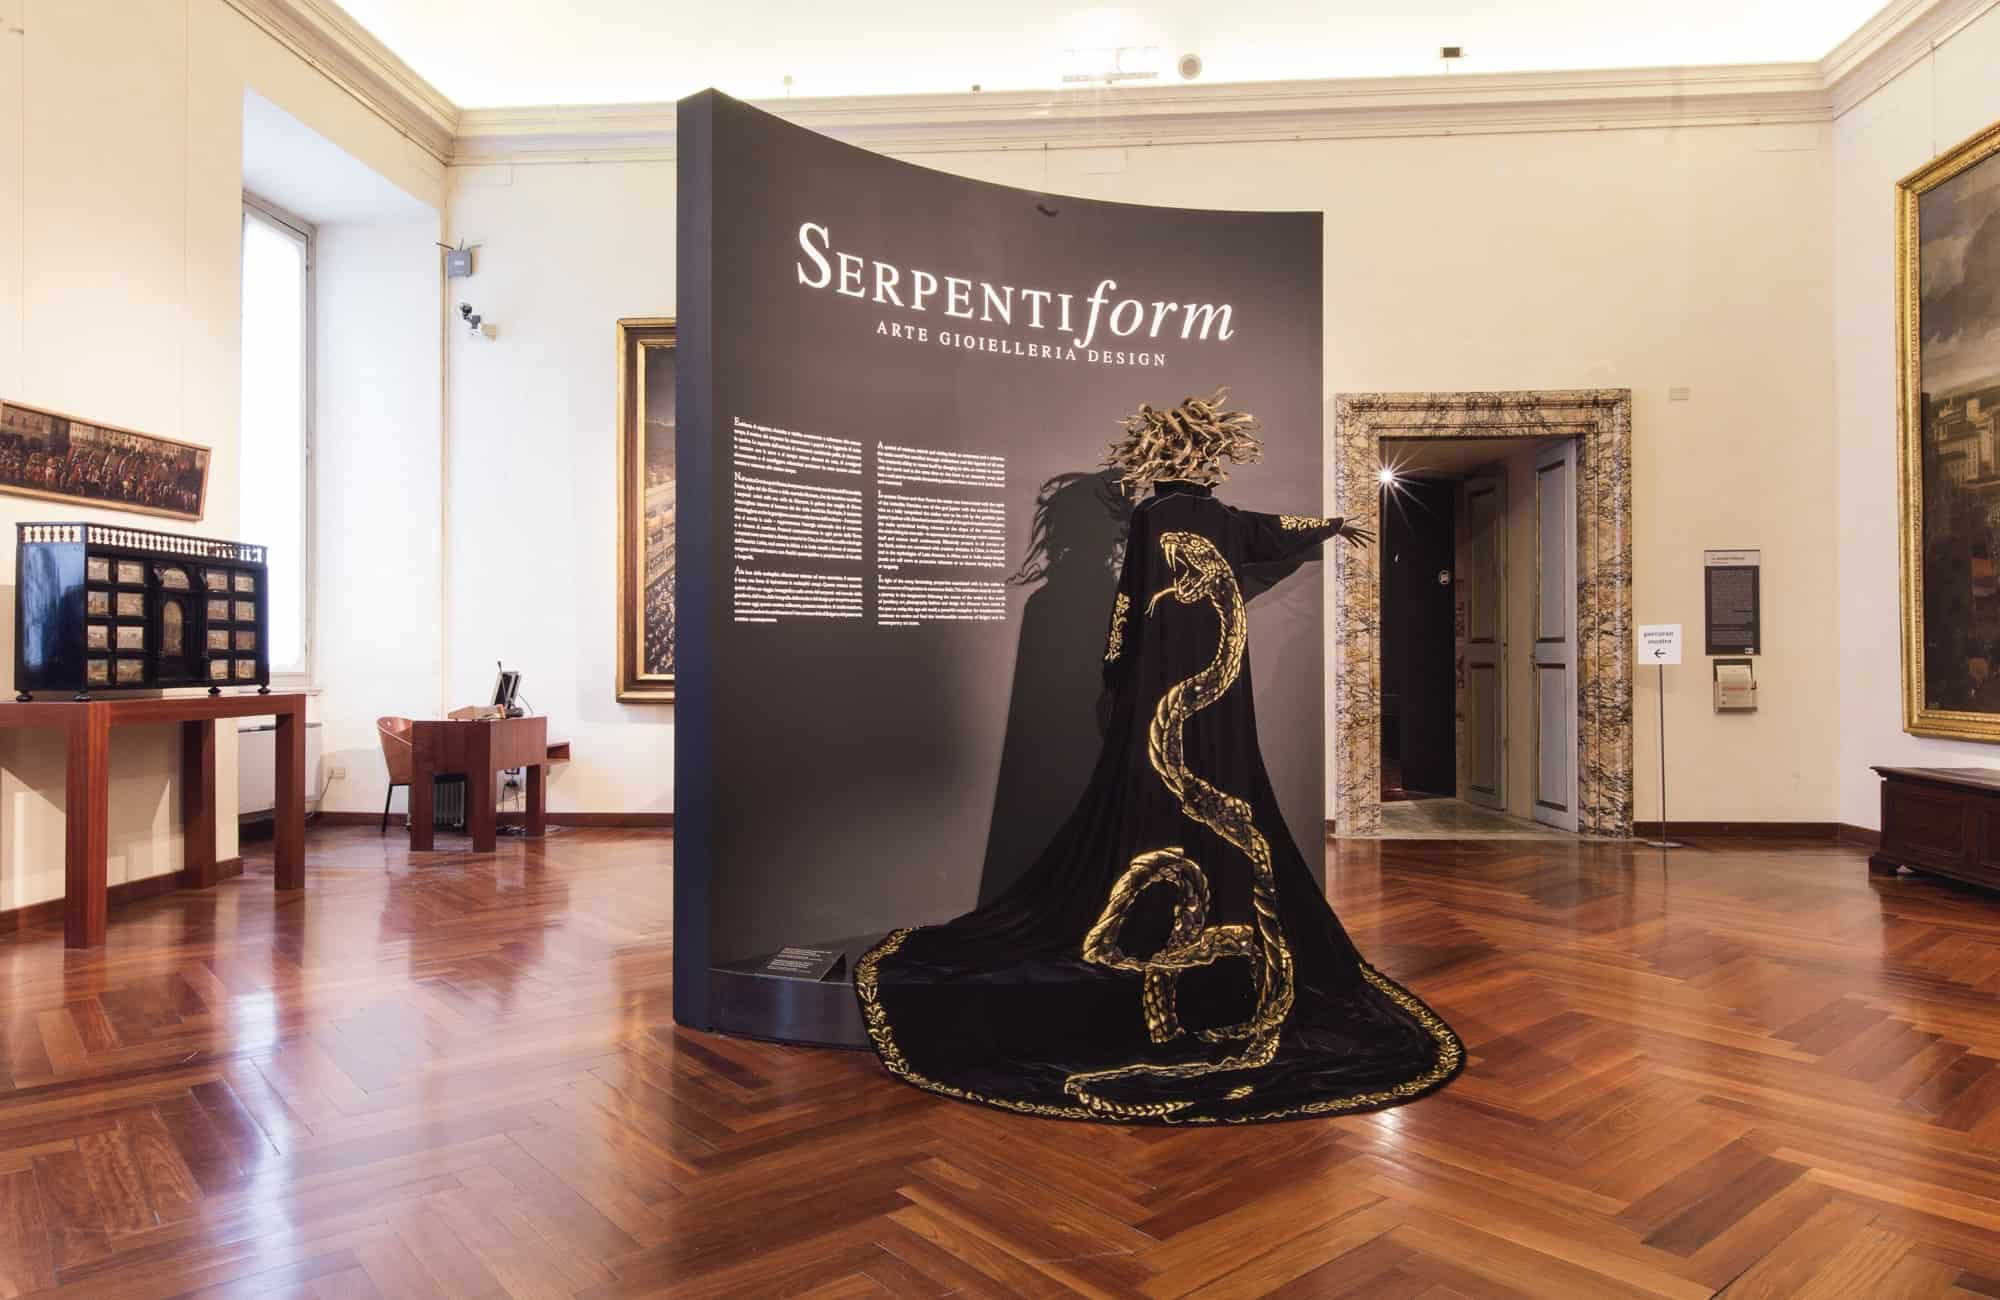 bulgari schlappi 2220 exhibition serpentiform rome